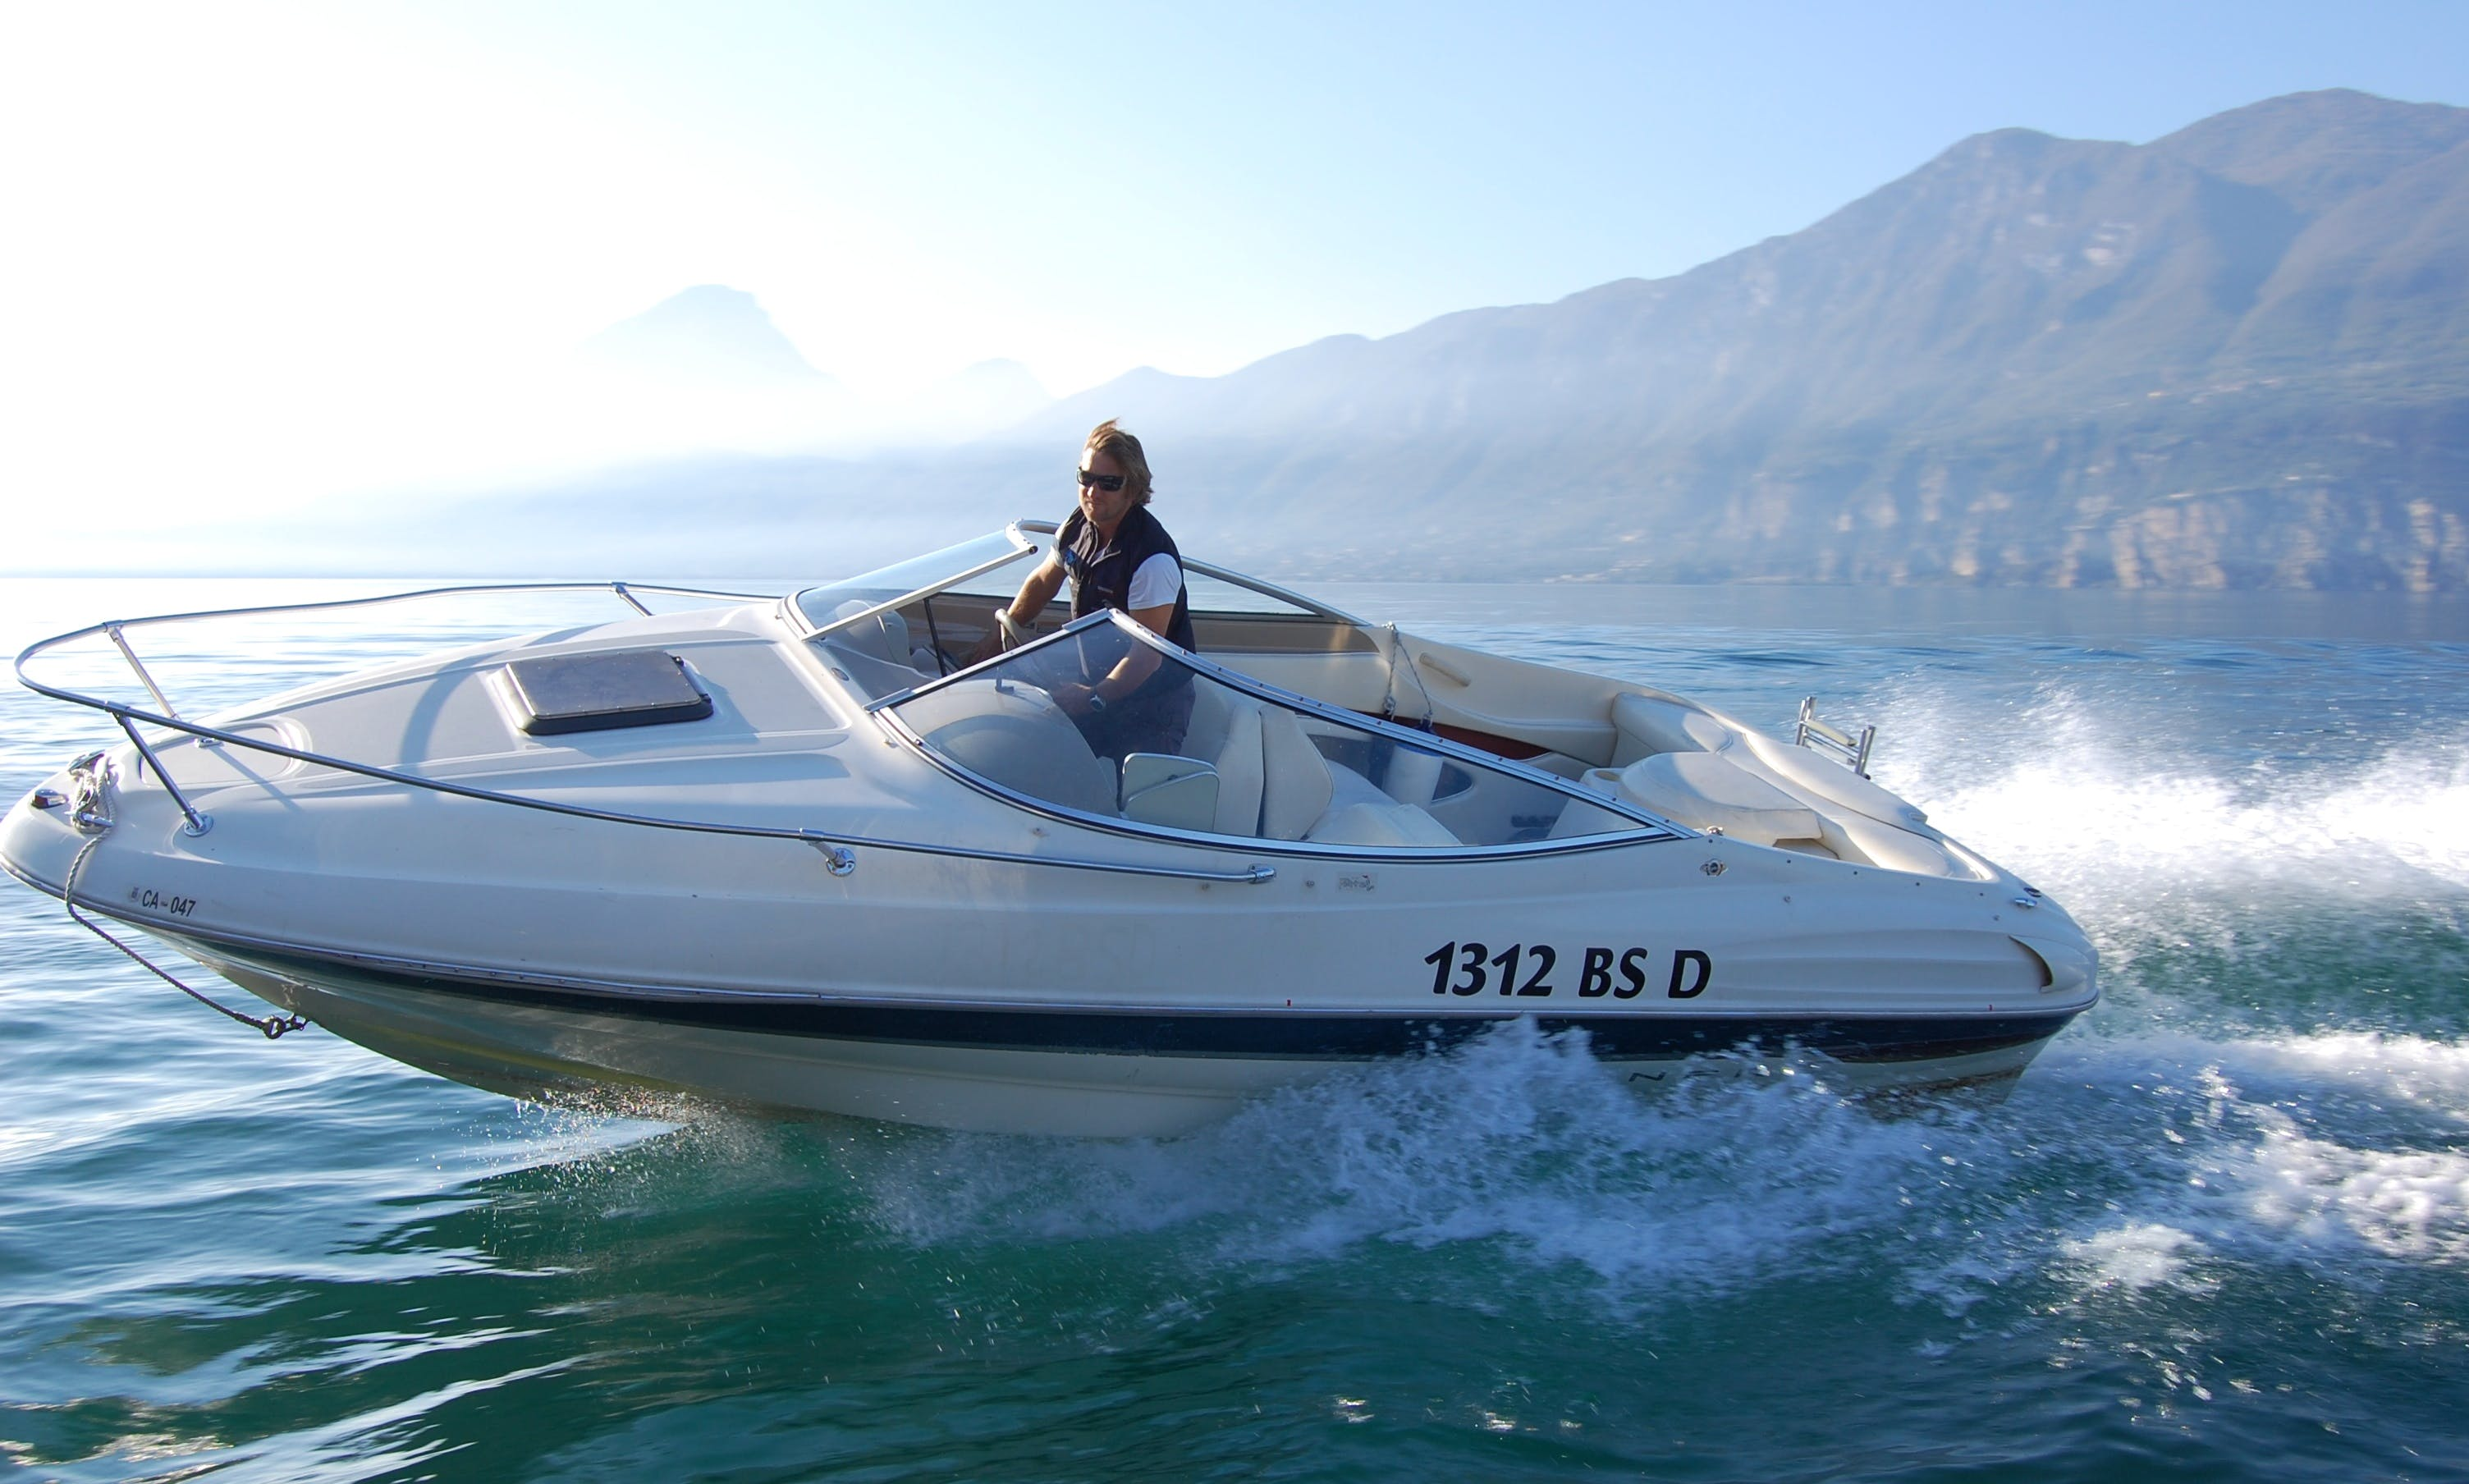 2003 Motor Yacht Charter in Brenzone, Italy for up to 8 person